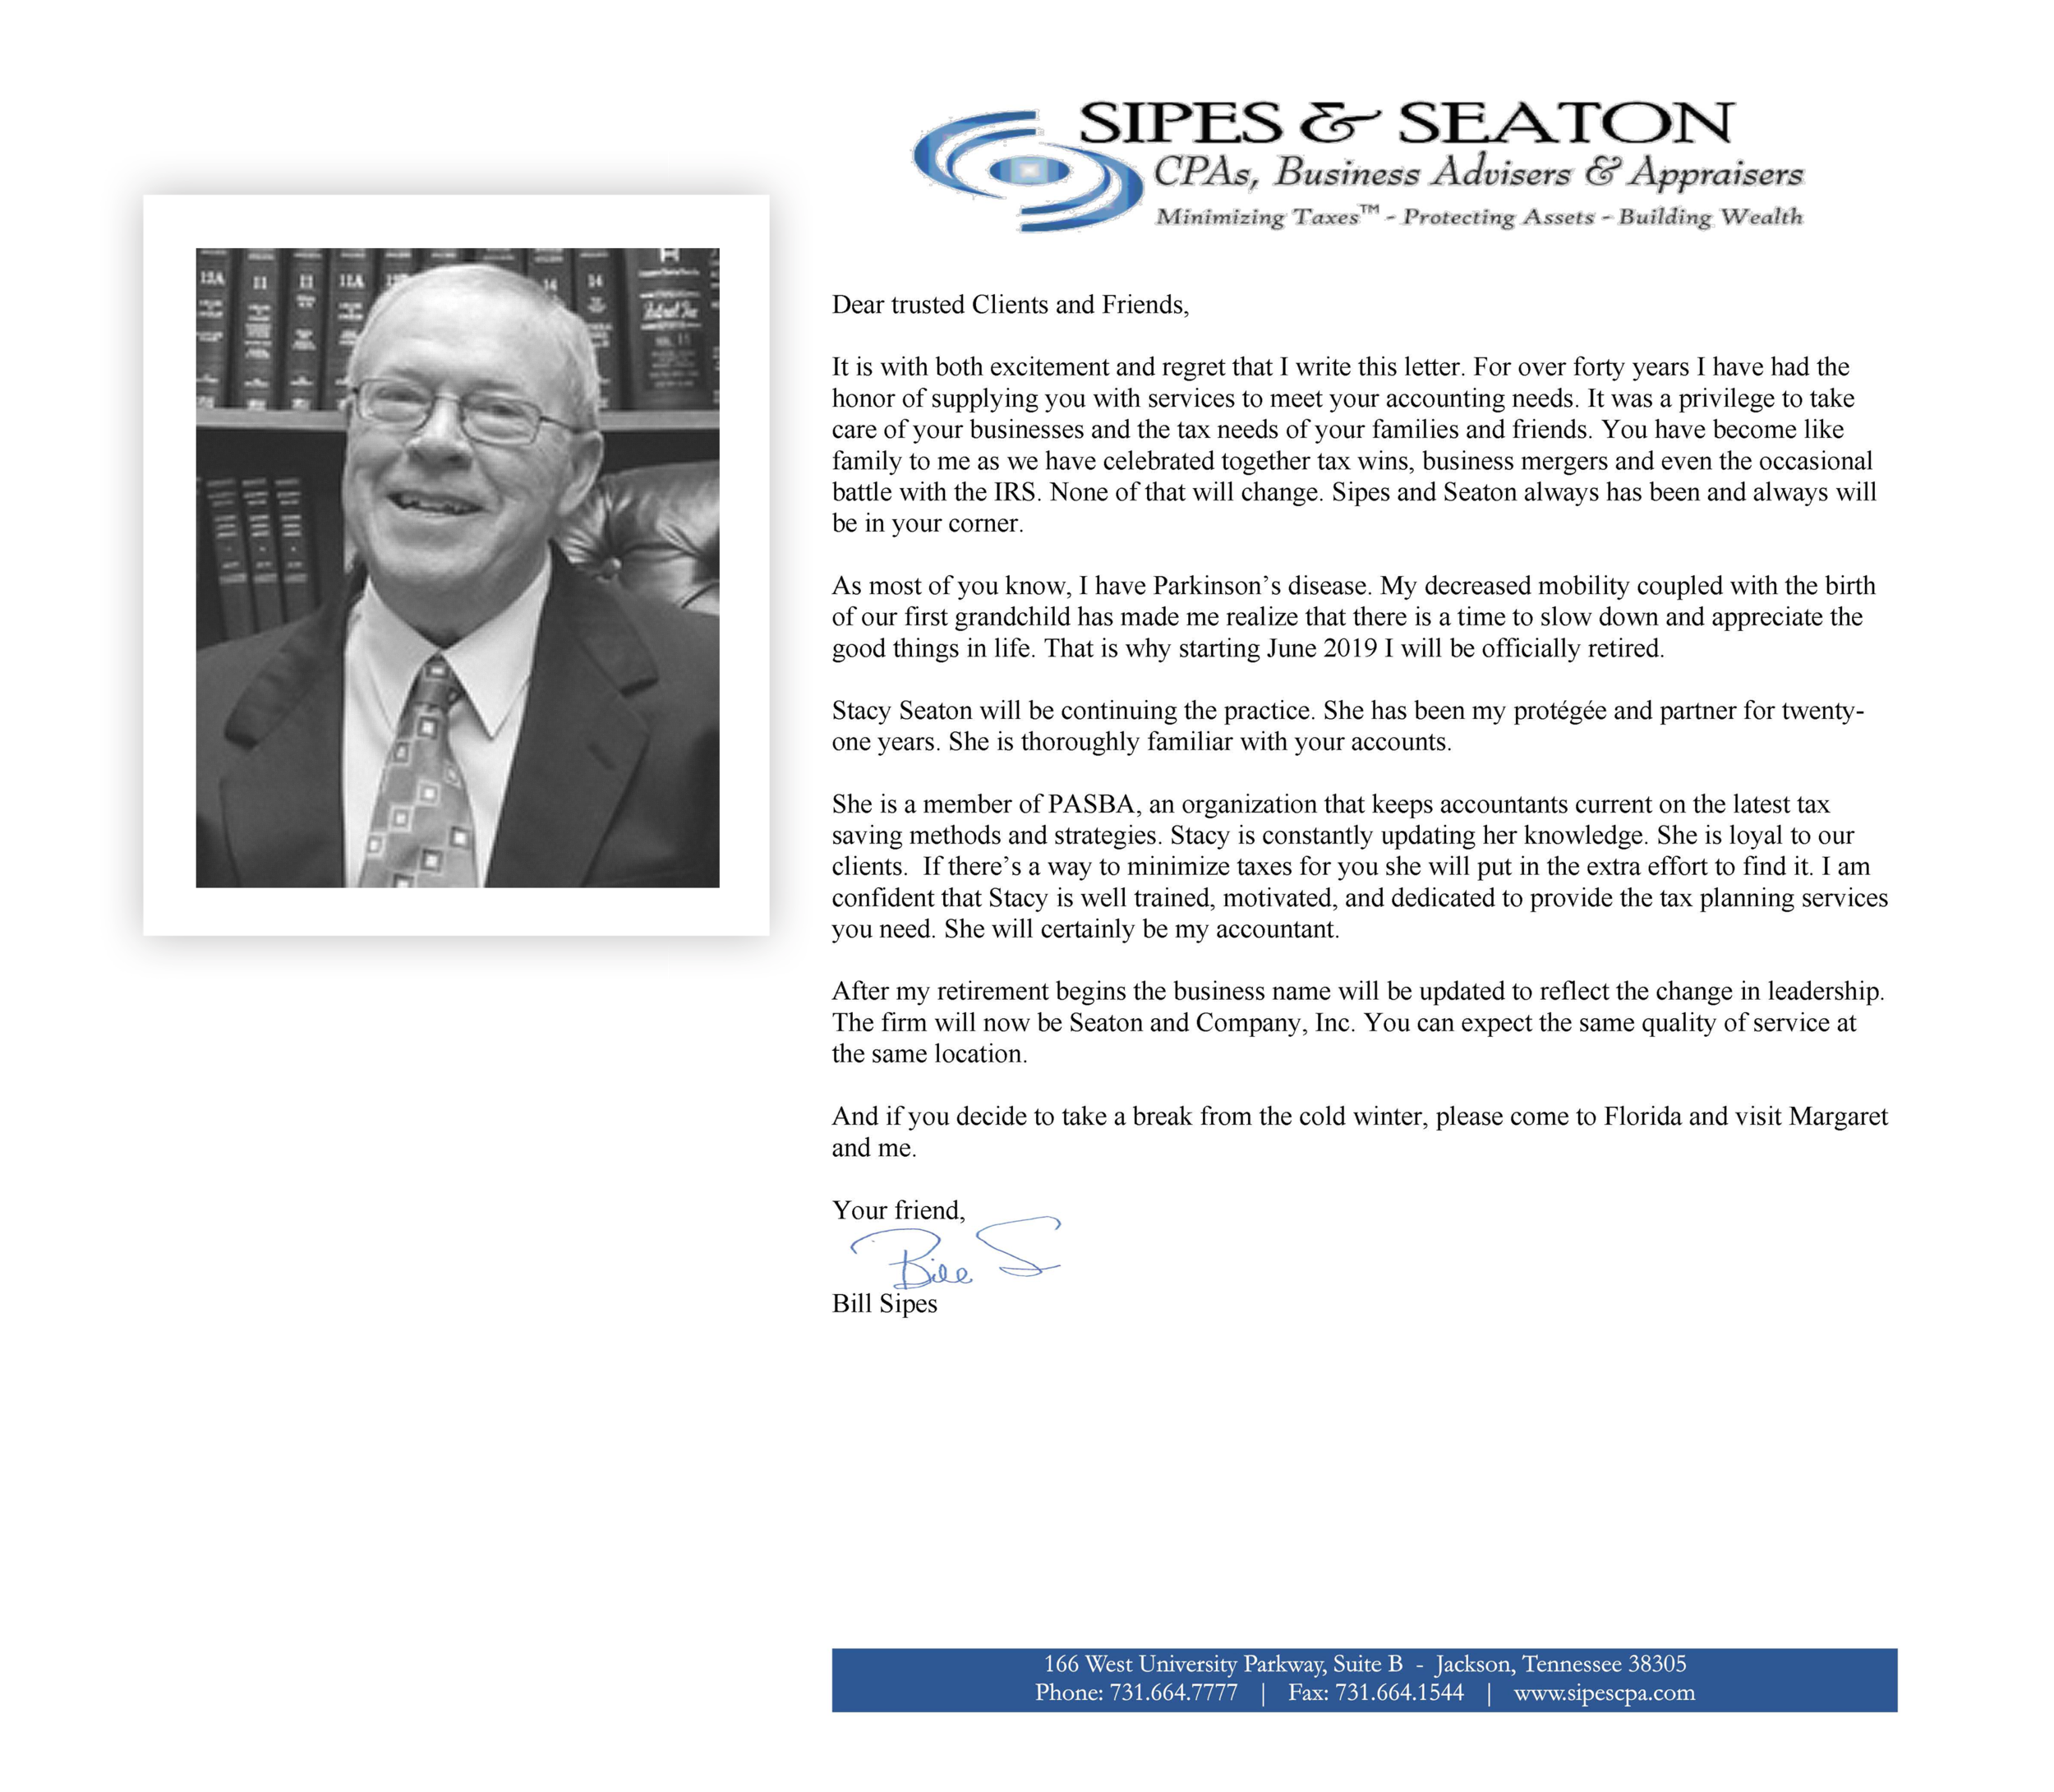 Bill-Sipes-Retirement-Letter-bw.png